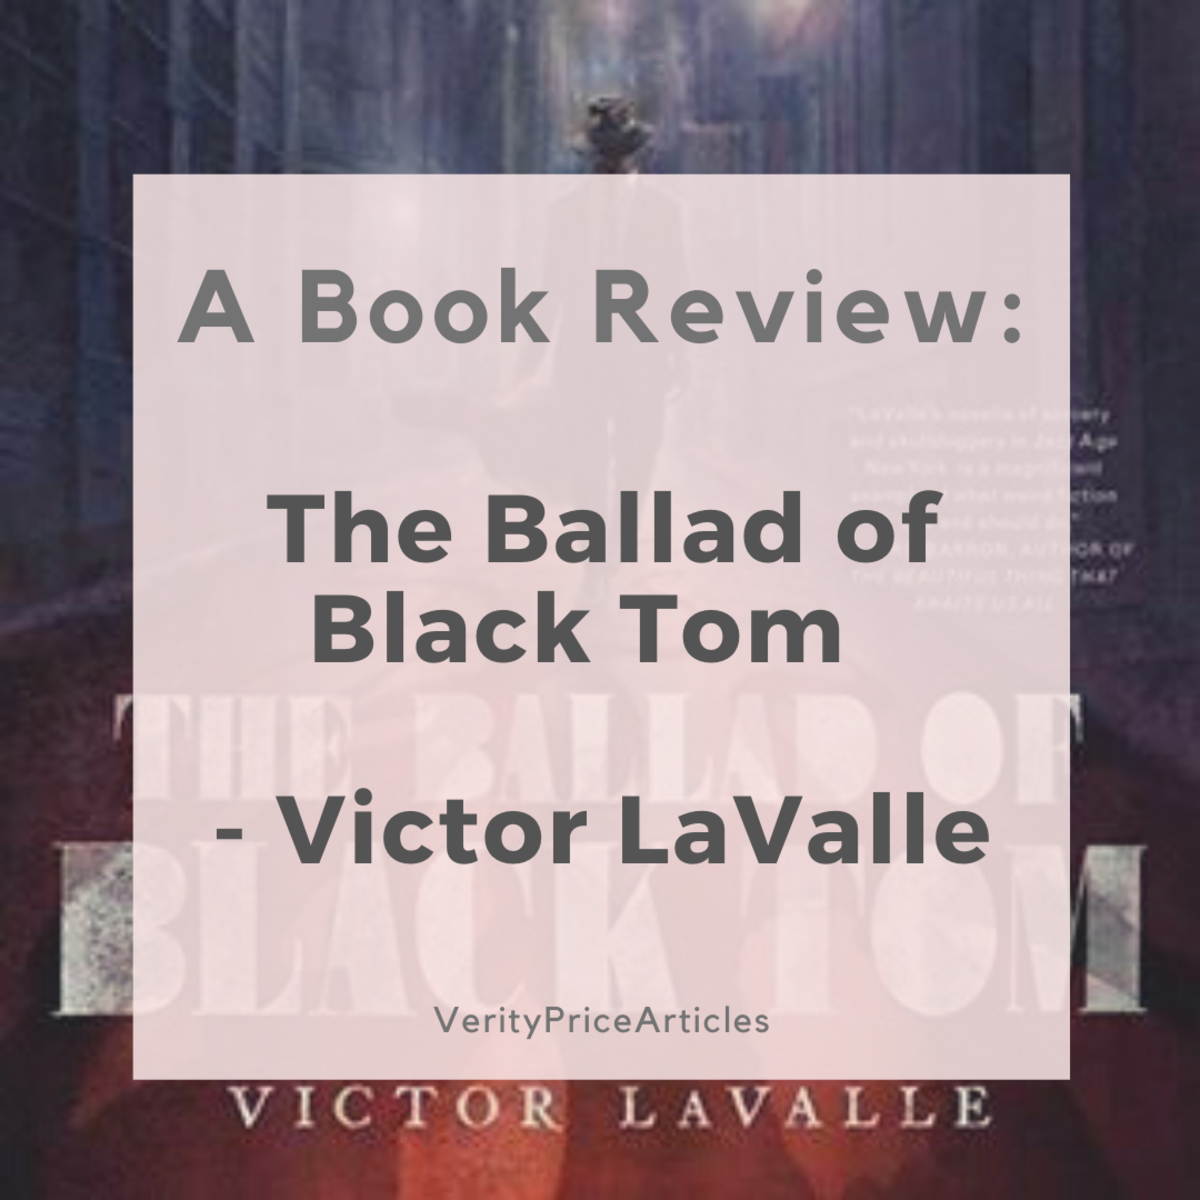 A Book Review: